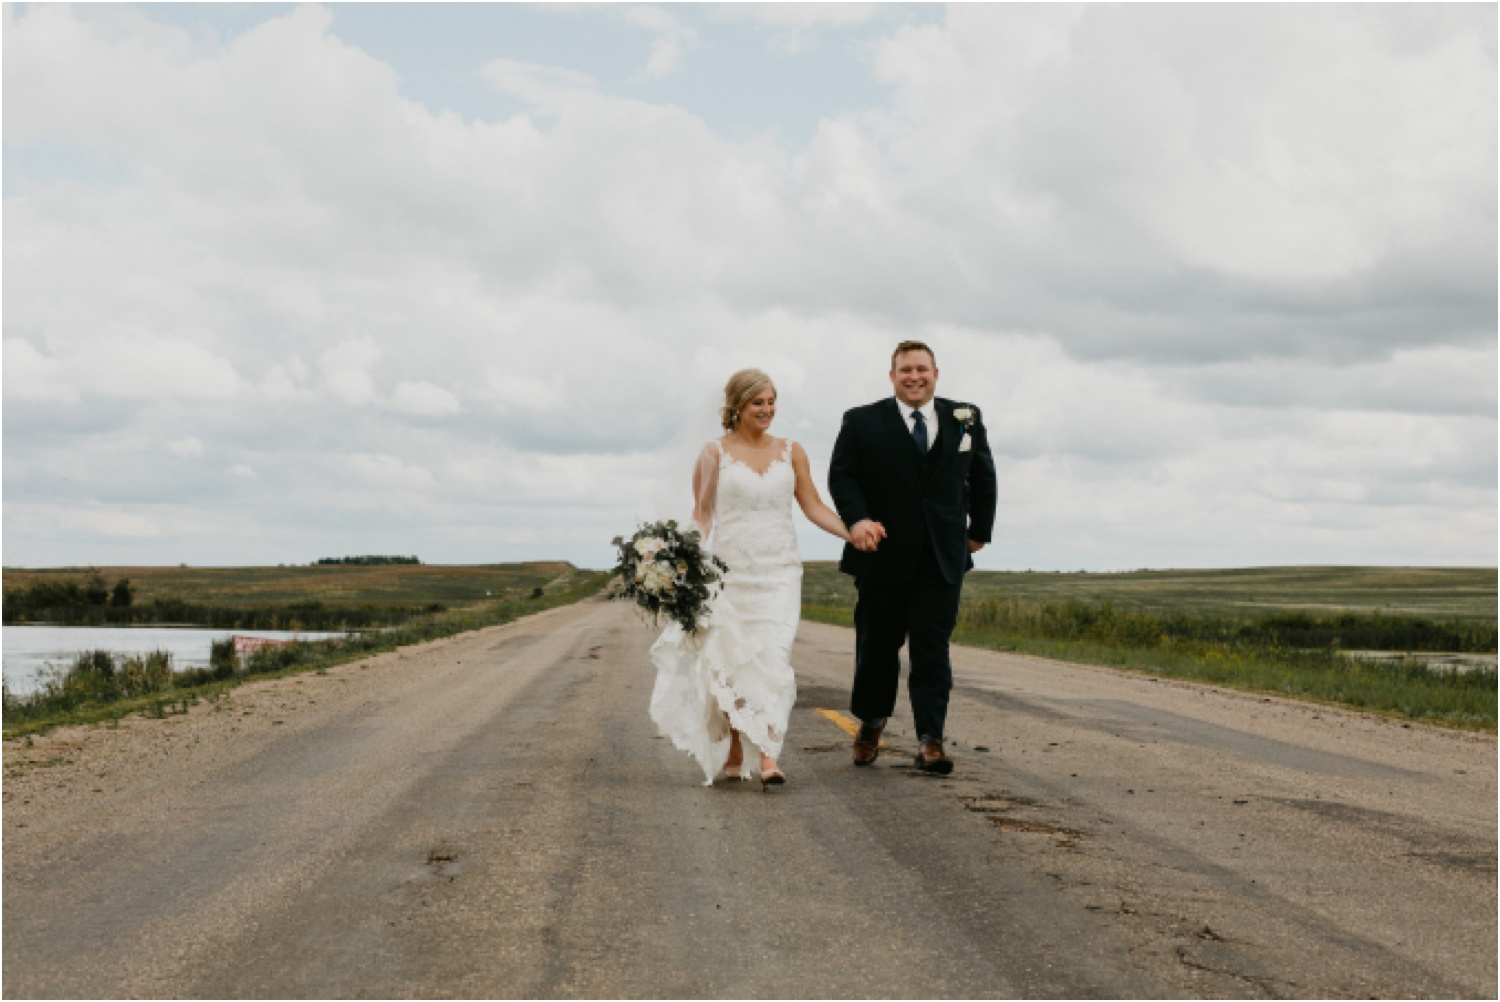 Kailey_Carter_Saskatchewan_Wedding (348 of 727).jpg